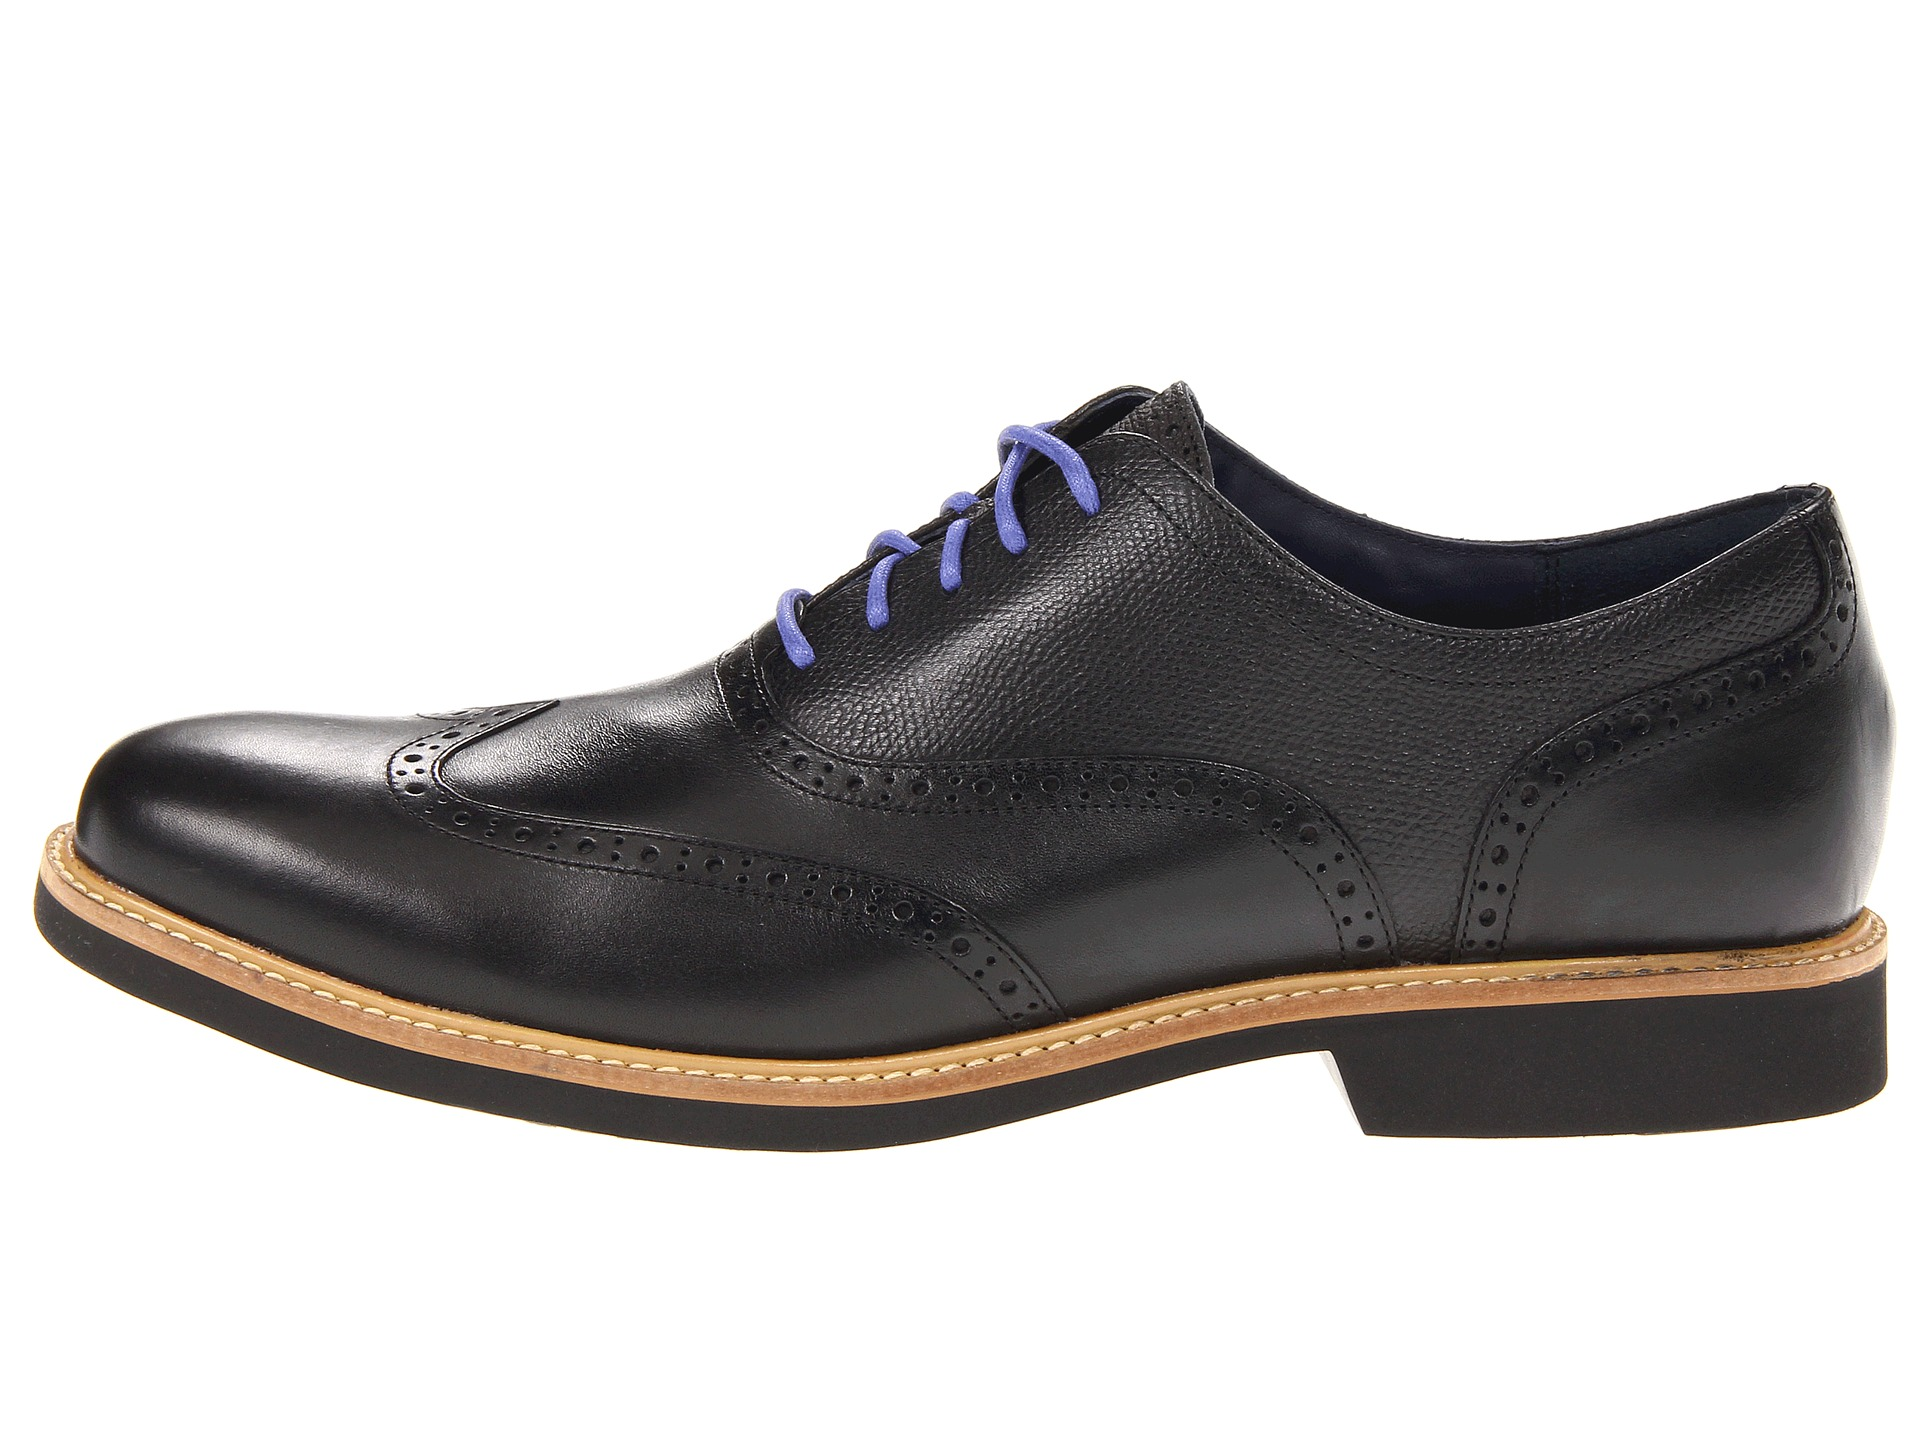 Cole Haan Great Jones Wingtip Shoes Shipped Free At Zappos